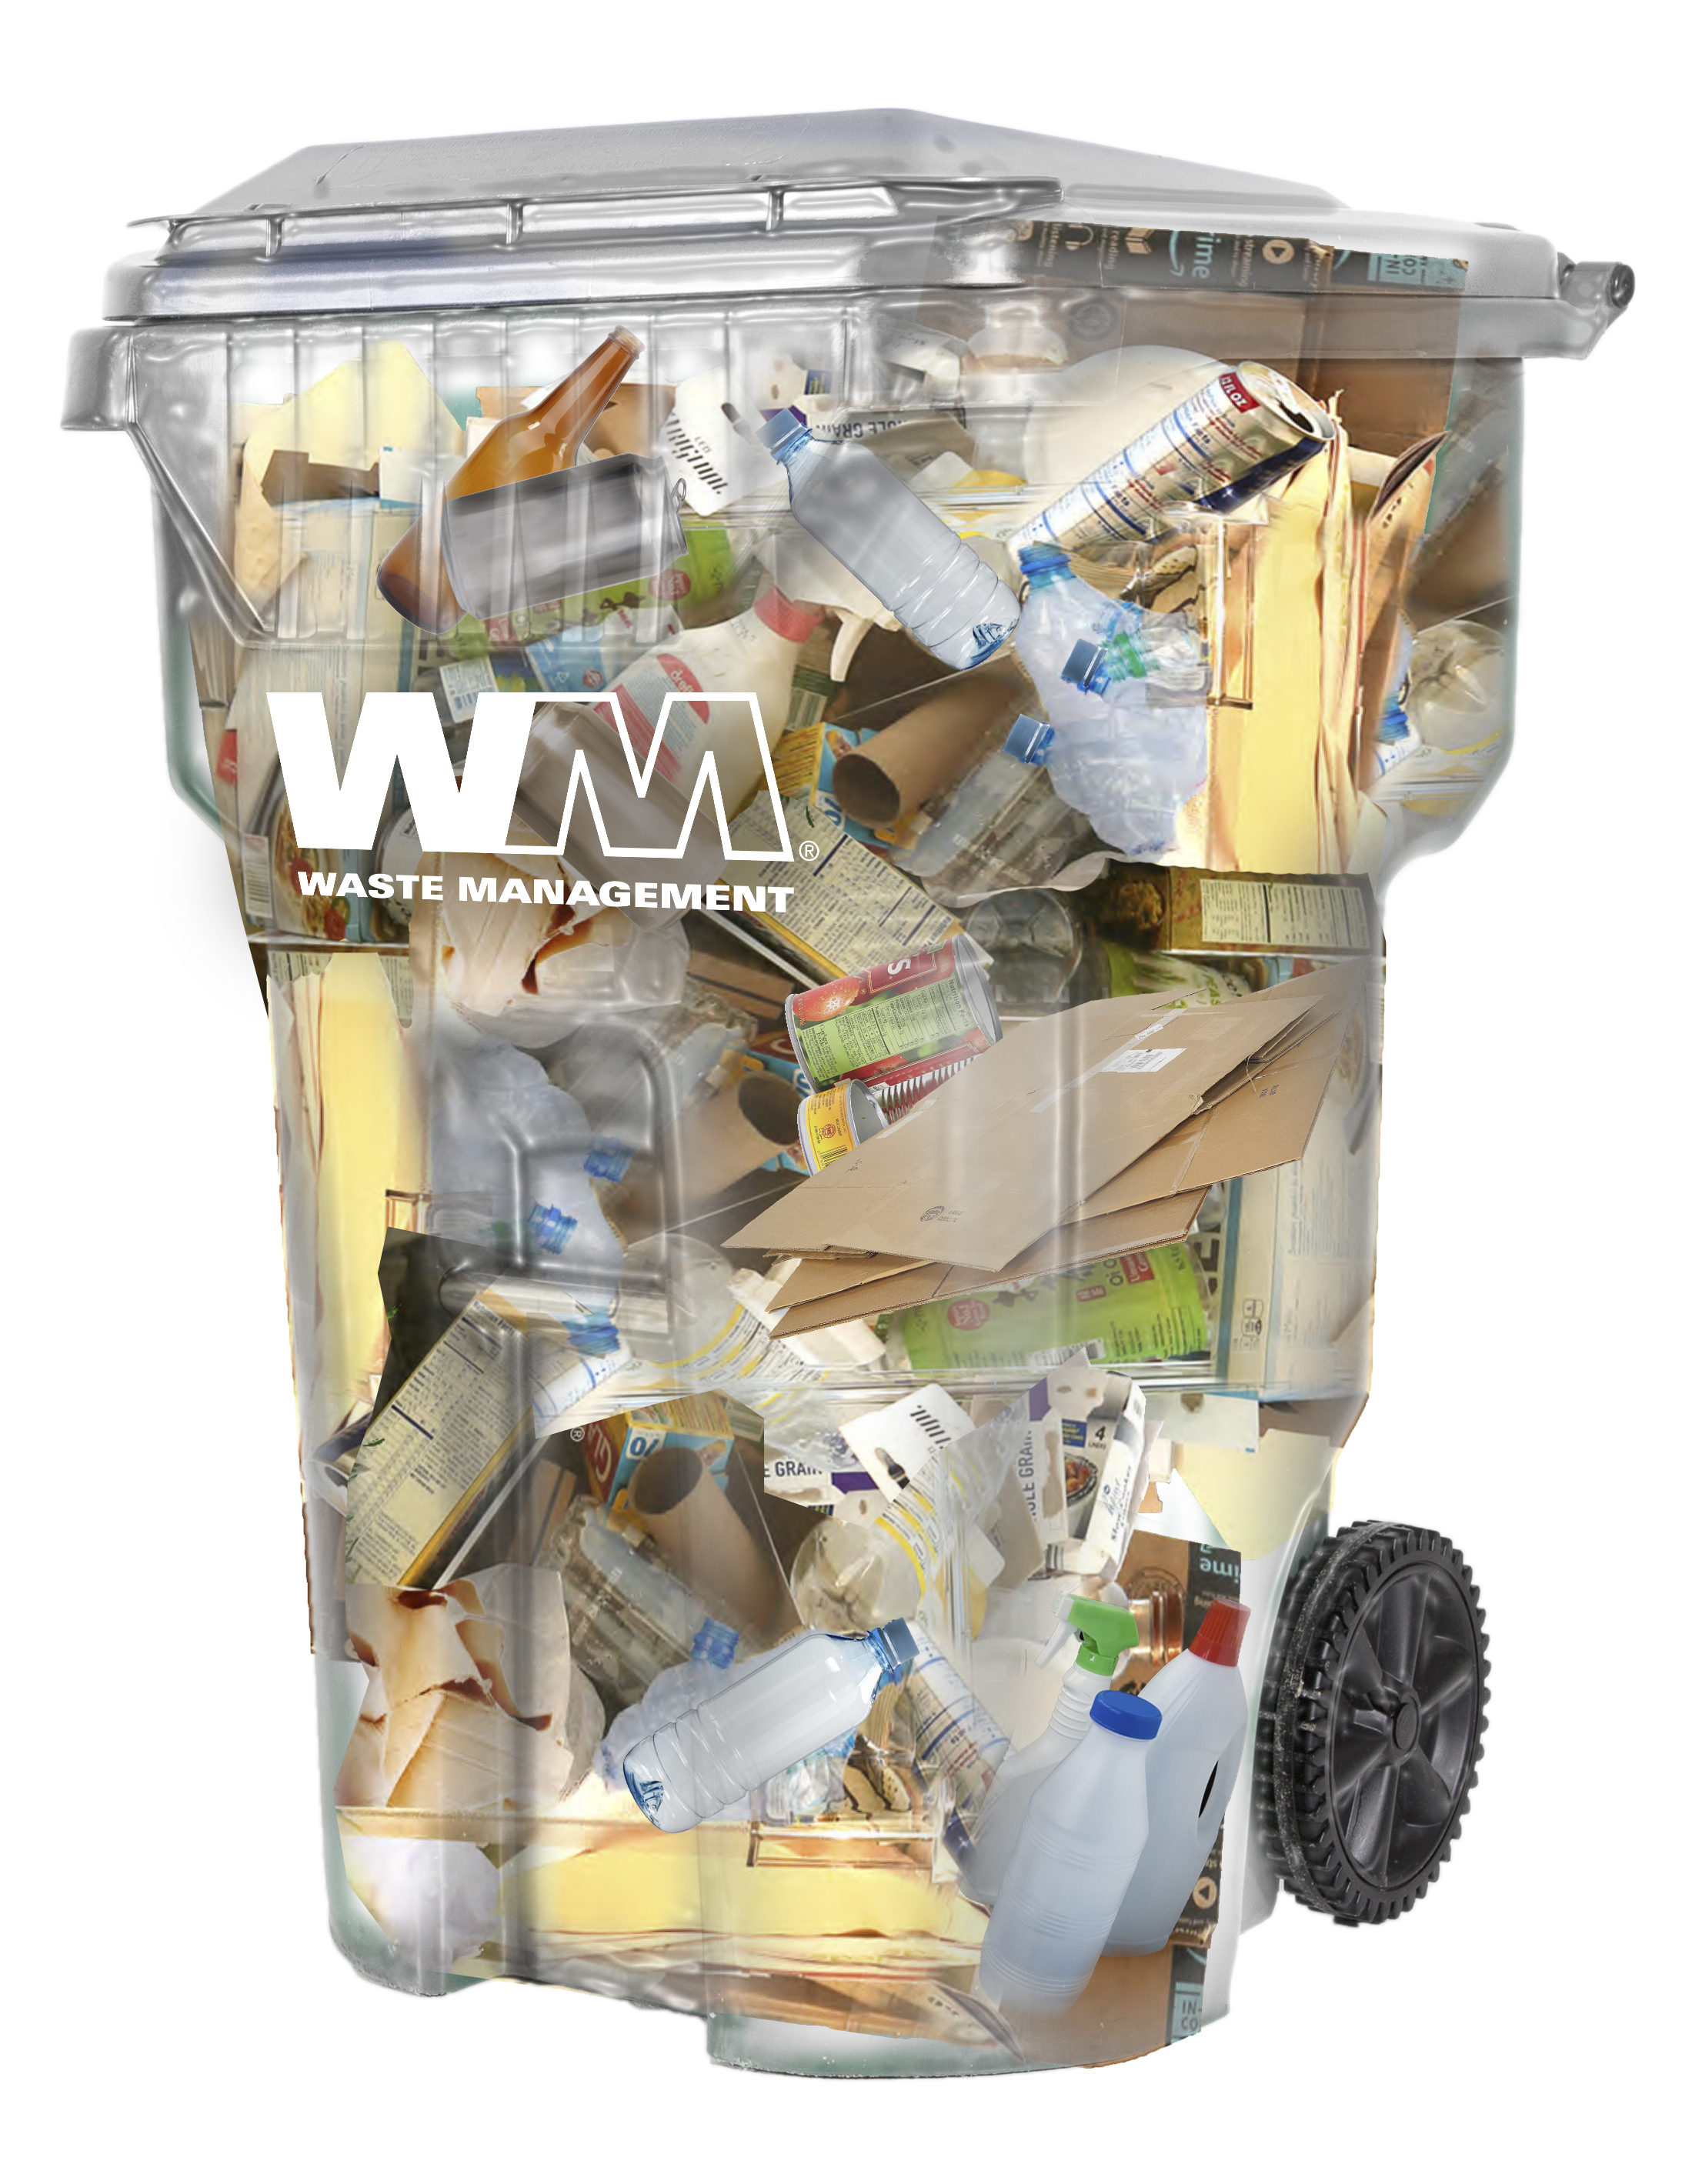 Wm Picup Niceville Christmas 2020 Niceville Florida Waste Services   Recycling Services Niceville FL